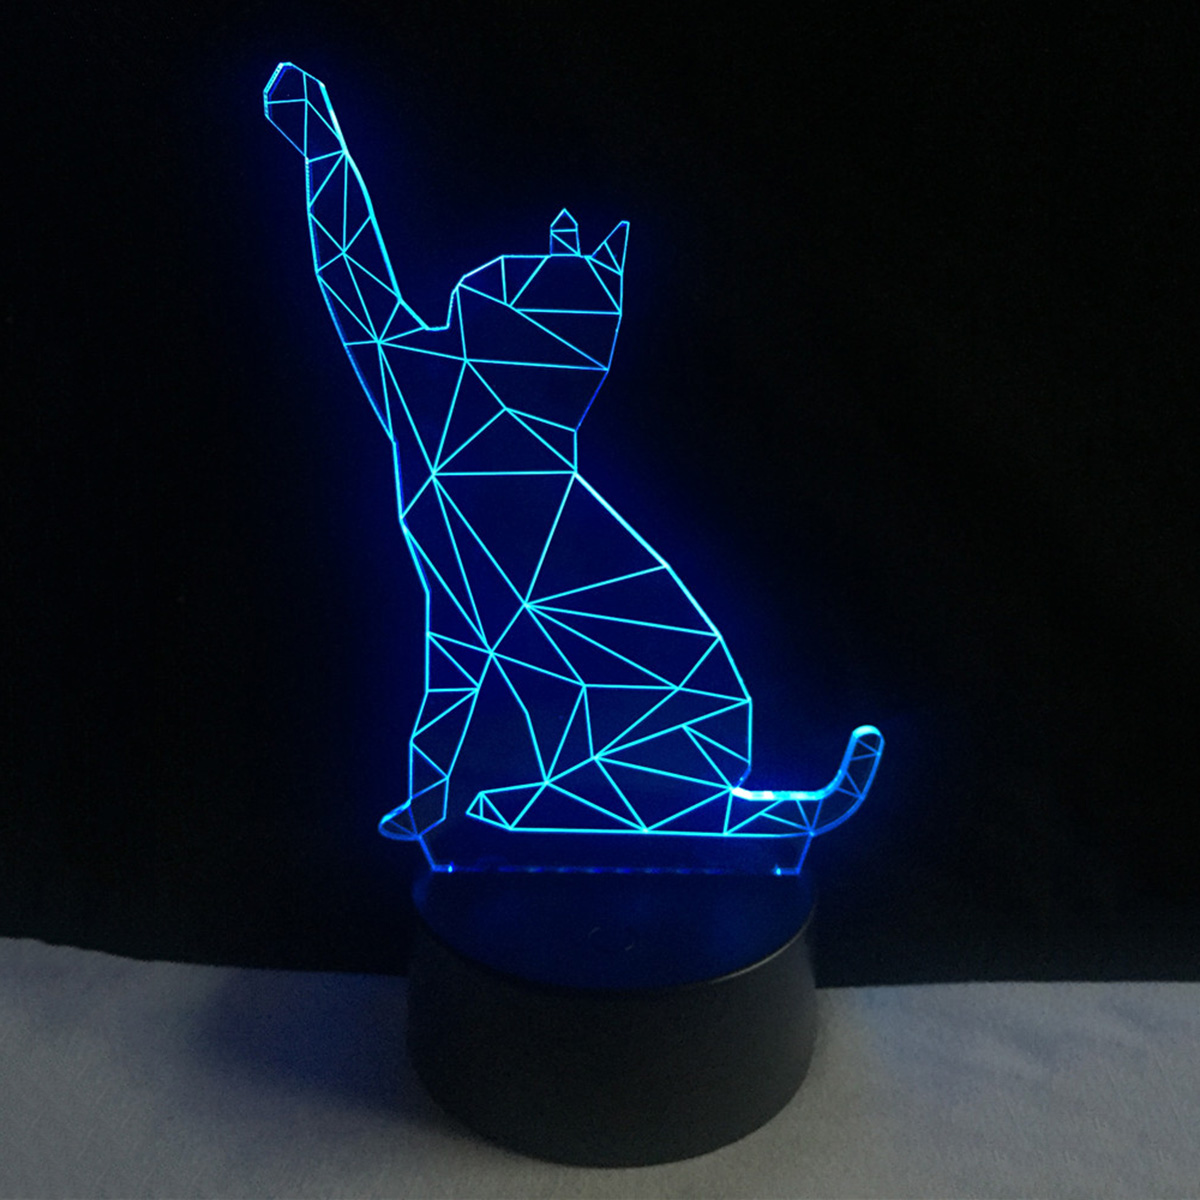 Colorful 3D cat USB LED Acrylic Night Light Touch Switch Nightlight Home Decor Creative Atmosphere Bedroom Desk Lamp festival 3d beckon cat shape touch colorful night light